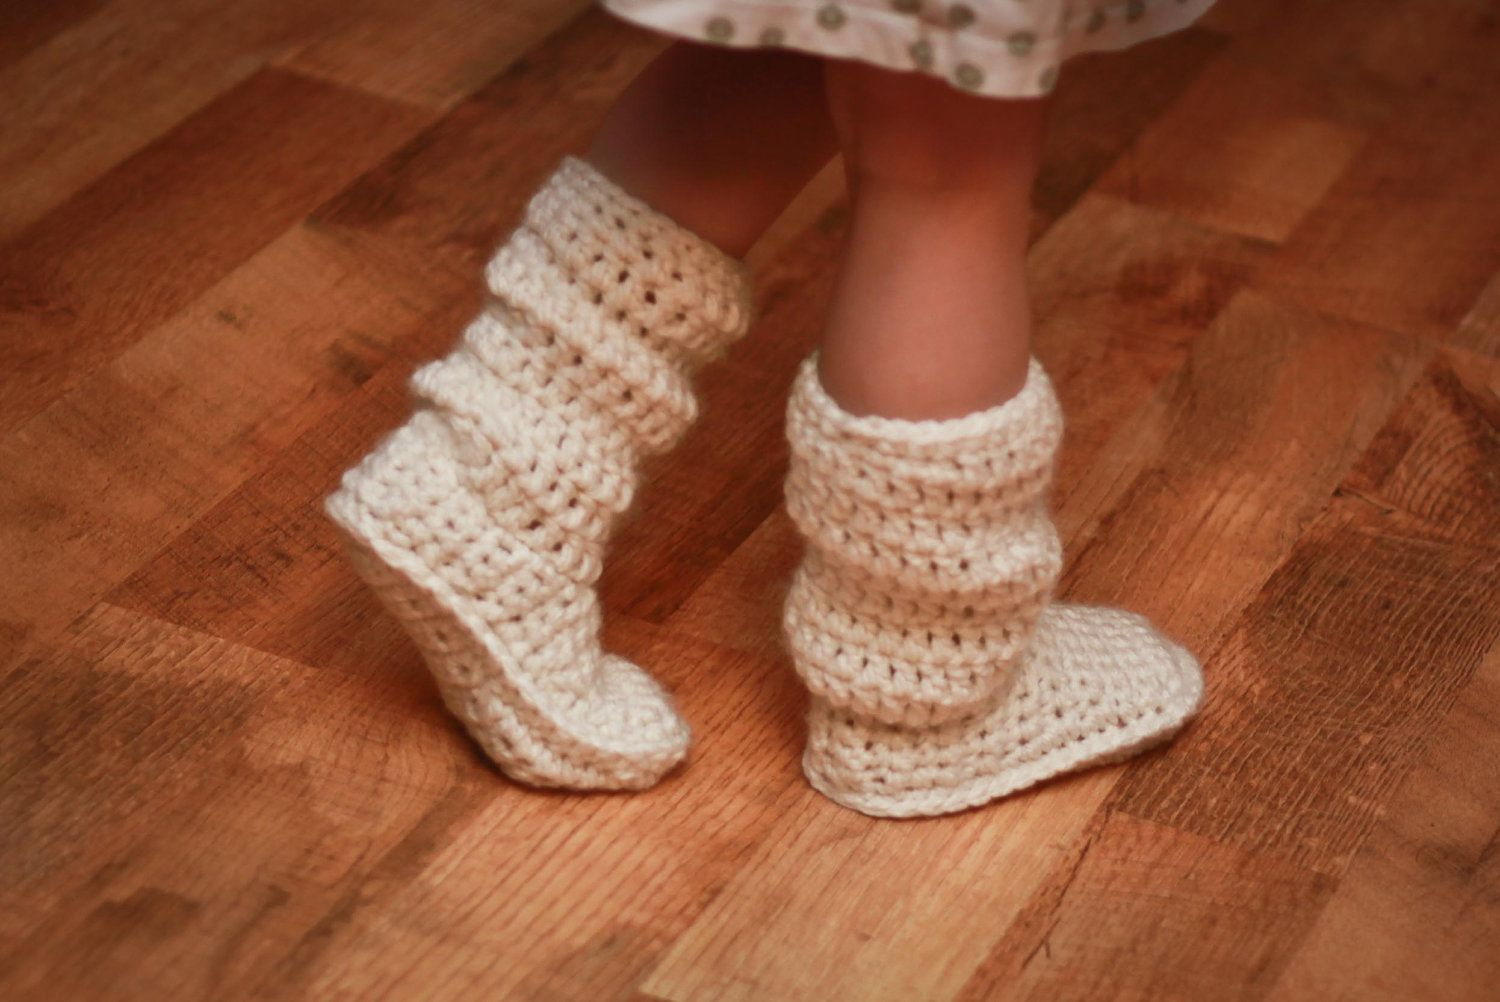 Crochet pattern mamachee boots baby to child sizes crochet crochet pattern mamachee boots baby to child sizes bankloansurffo Choice Image